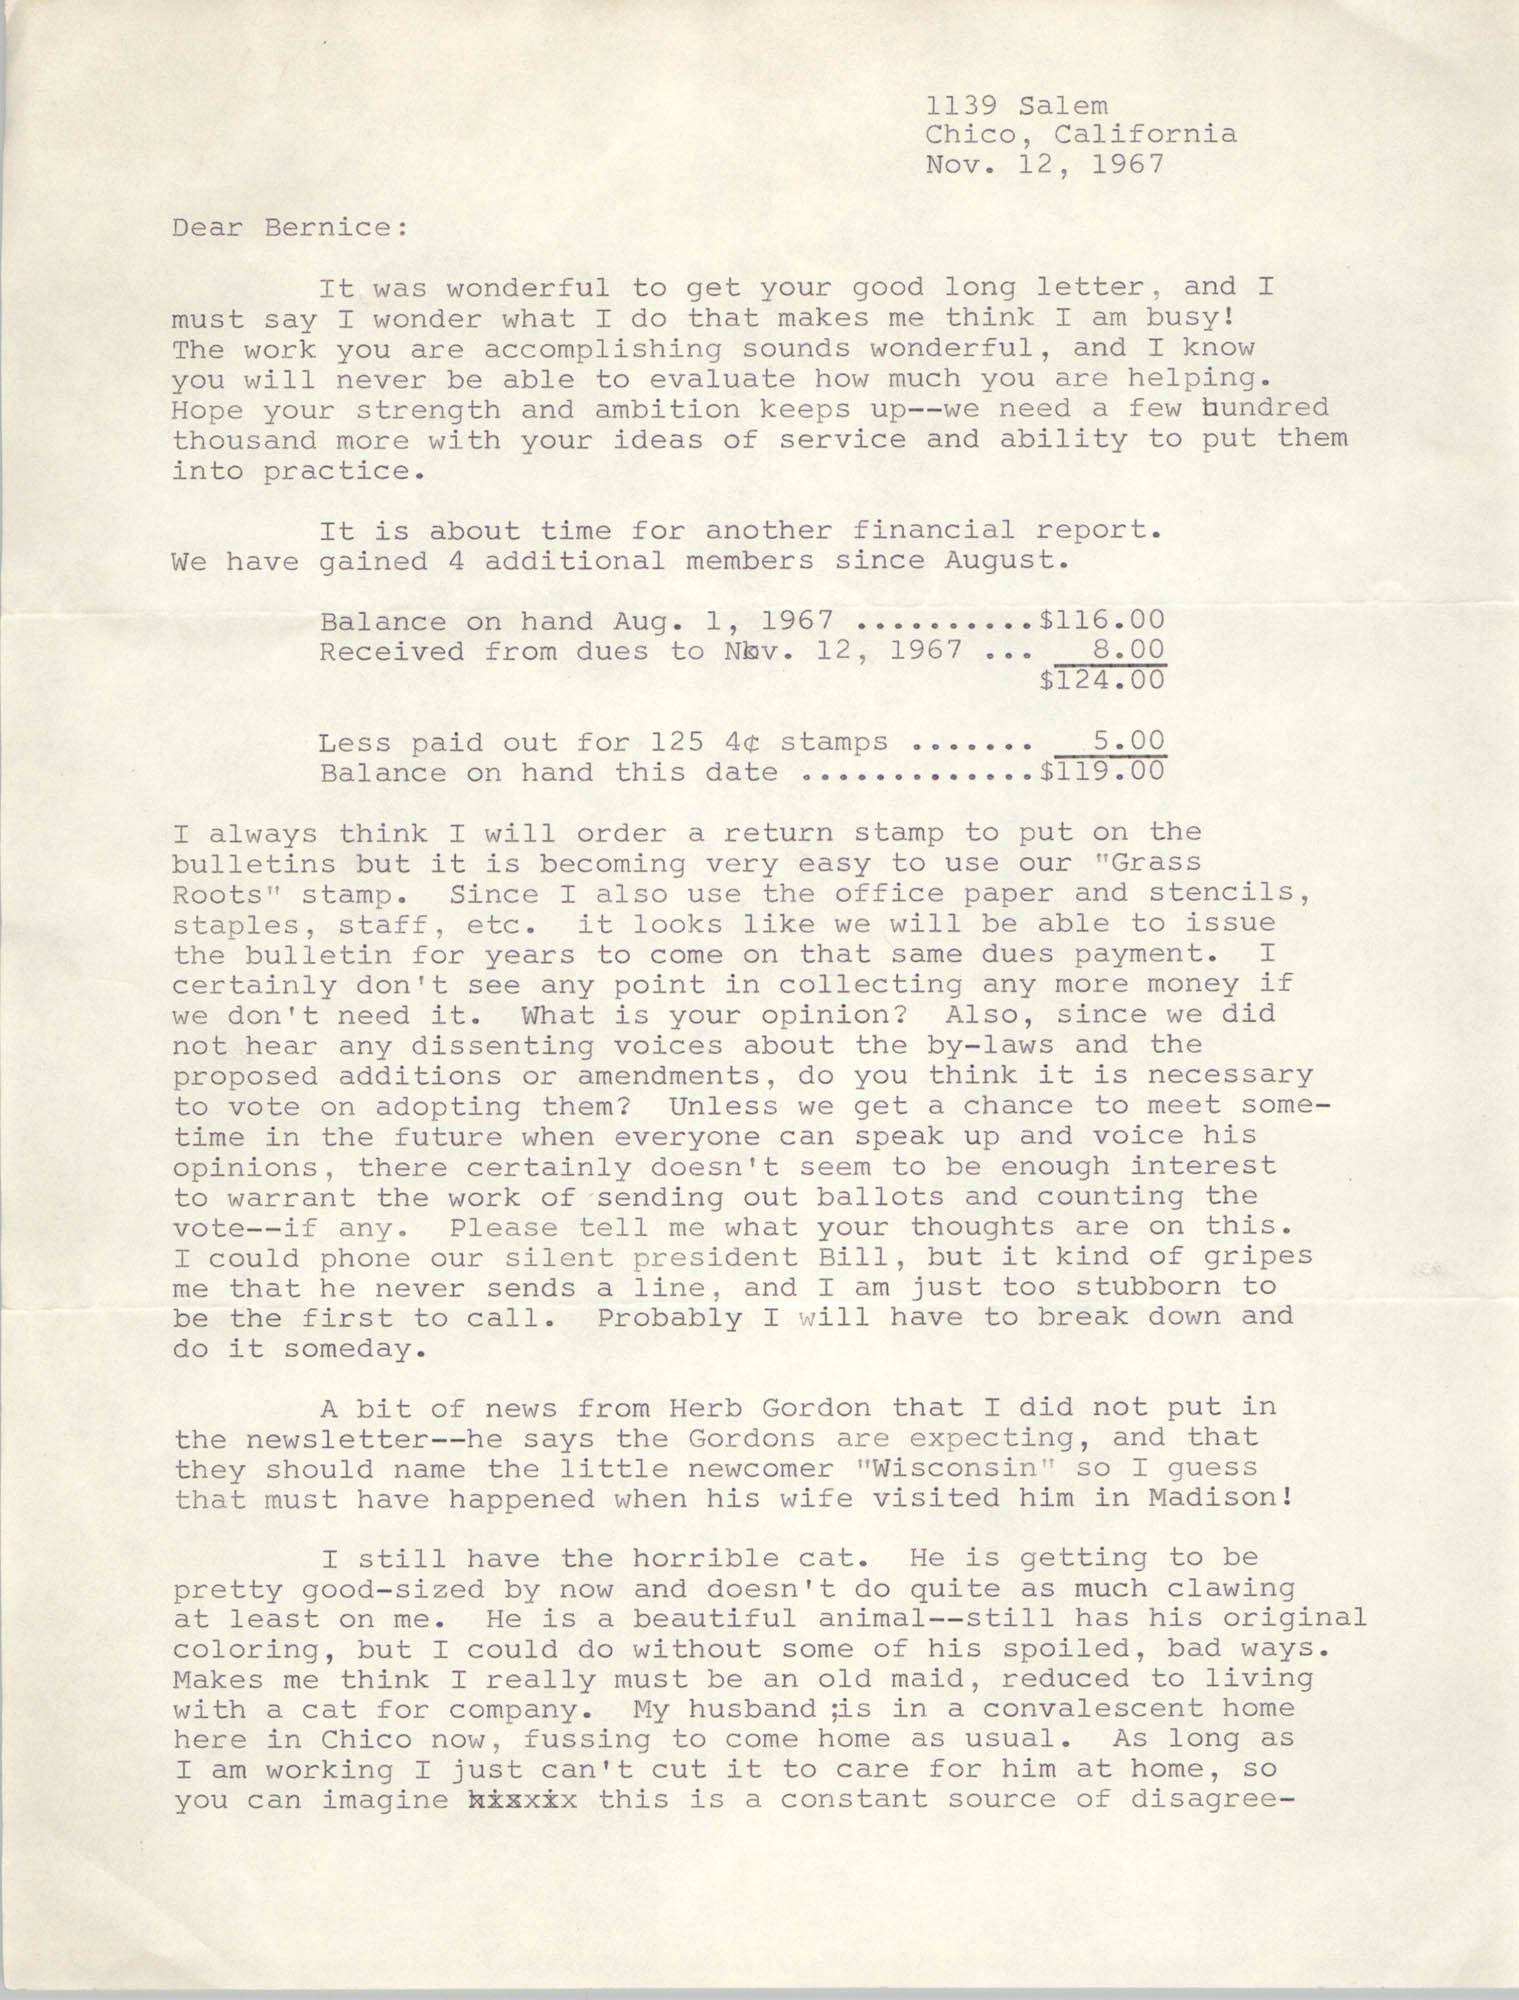 Letter from Margery Ames to Bernice Robinson, November 12, 1967